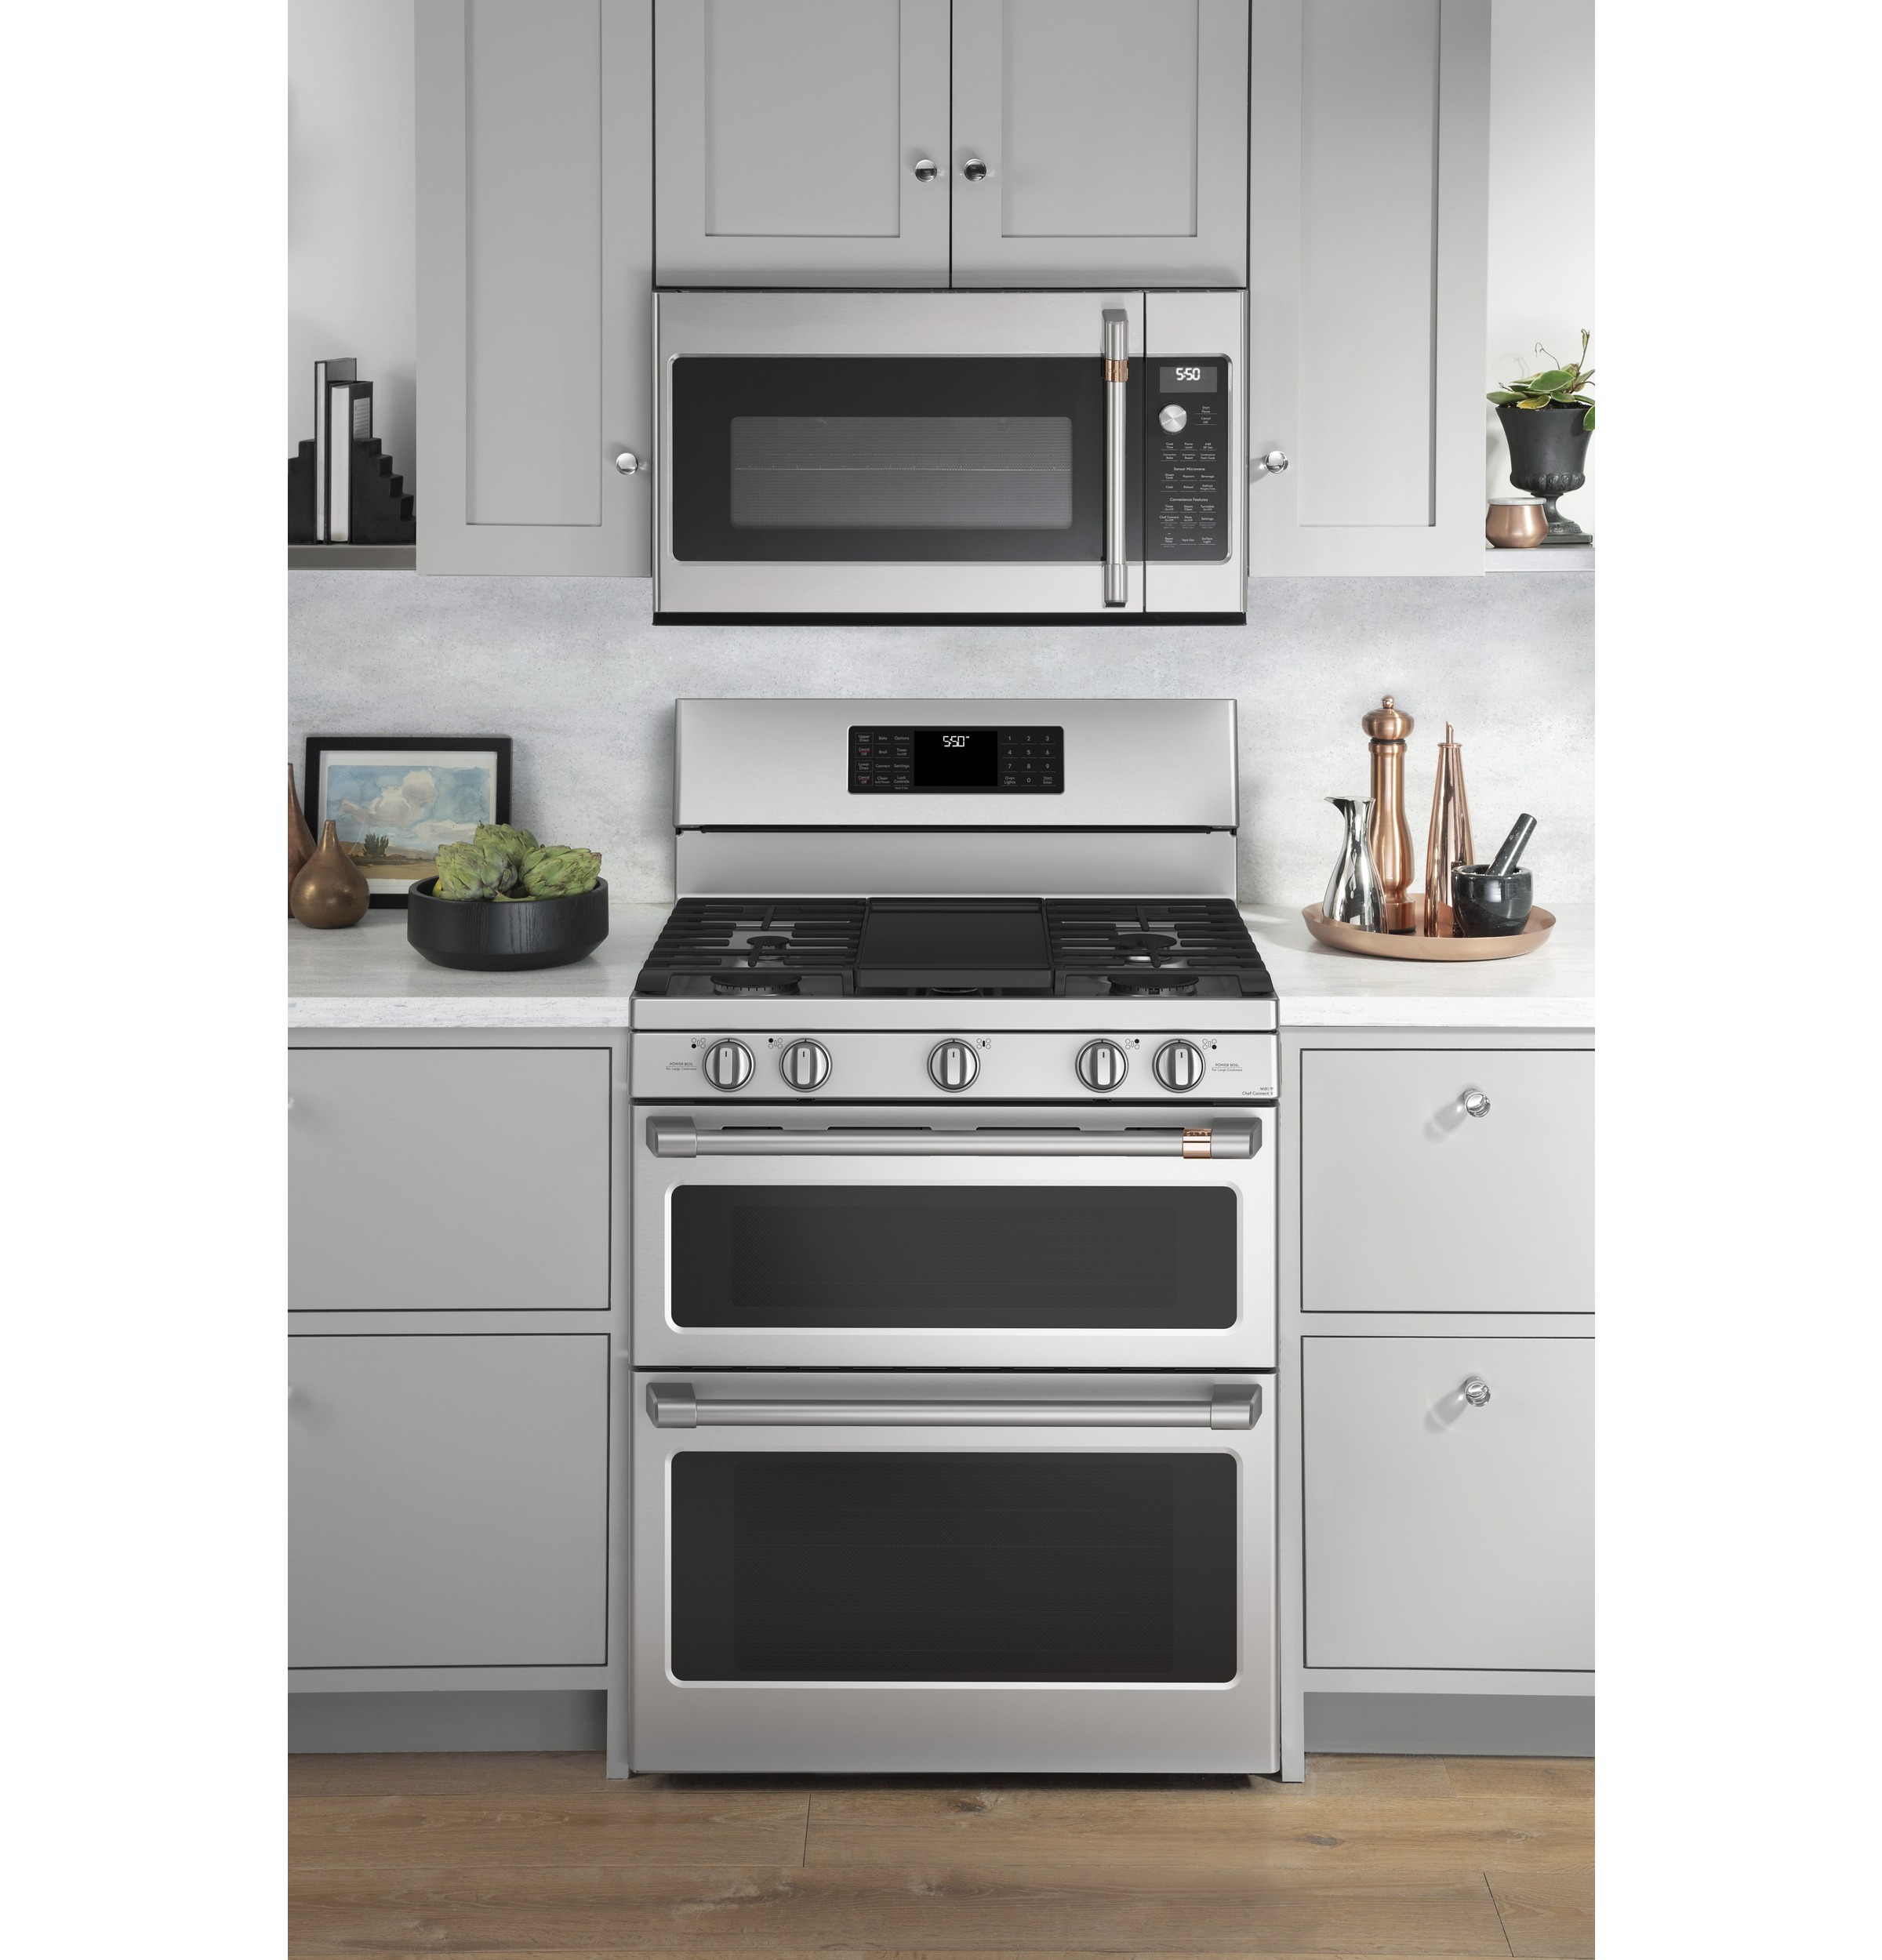 "Model: CGB550P2MS1 | Cafe Café™ 30"" Smart Free-Standing Gas Double-Oven Range with Convection"